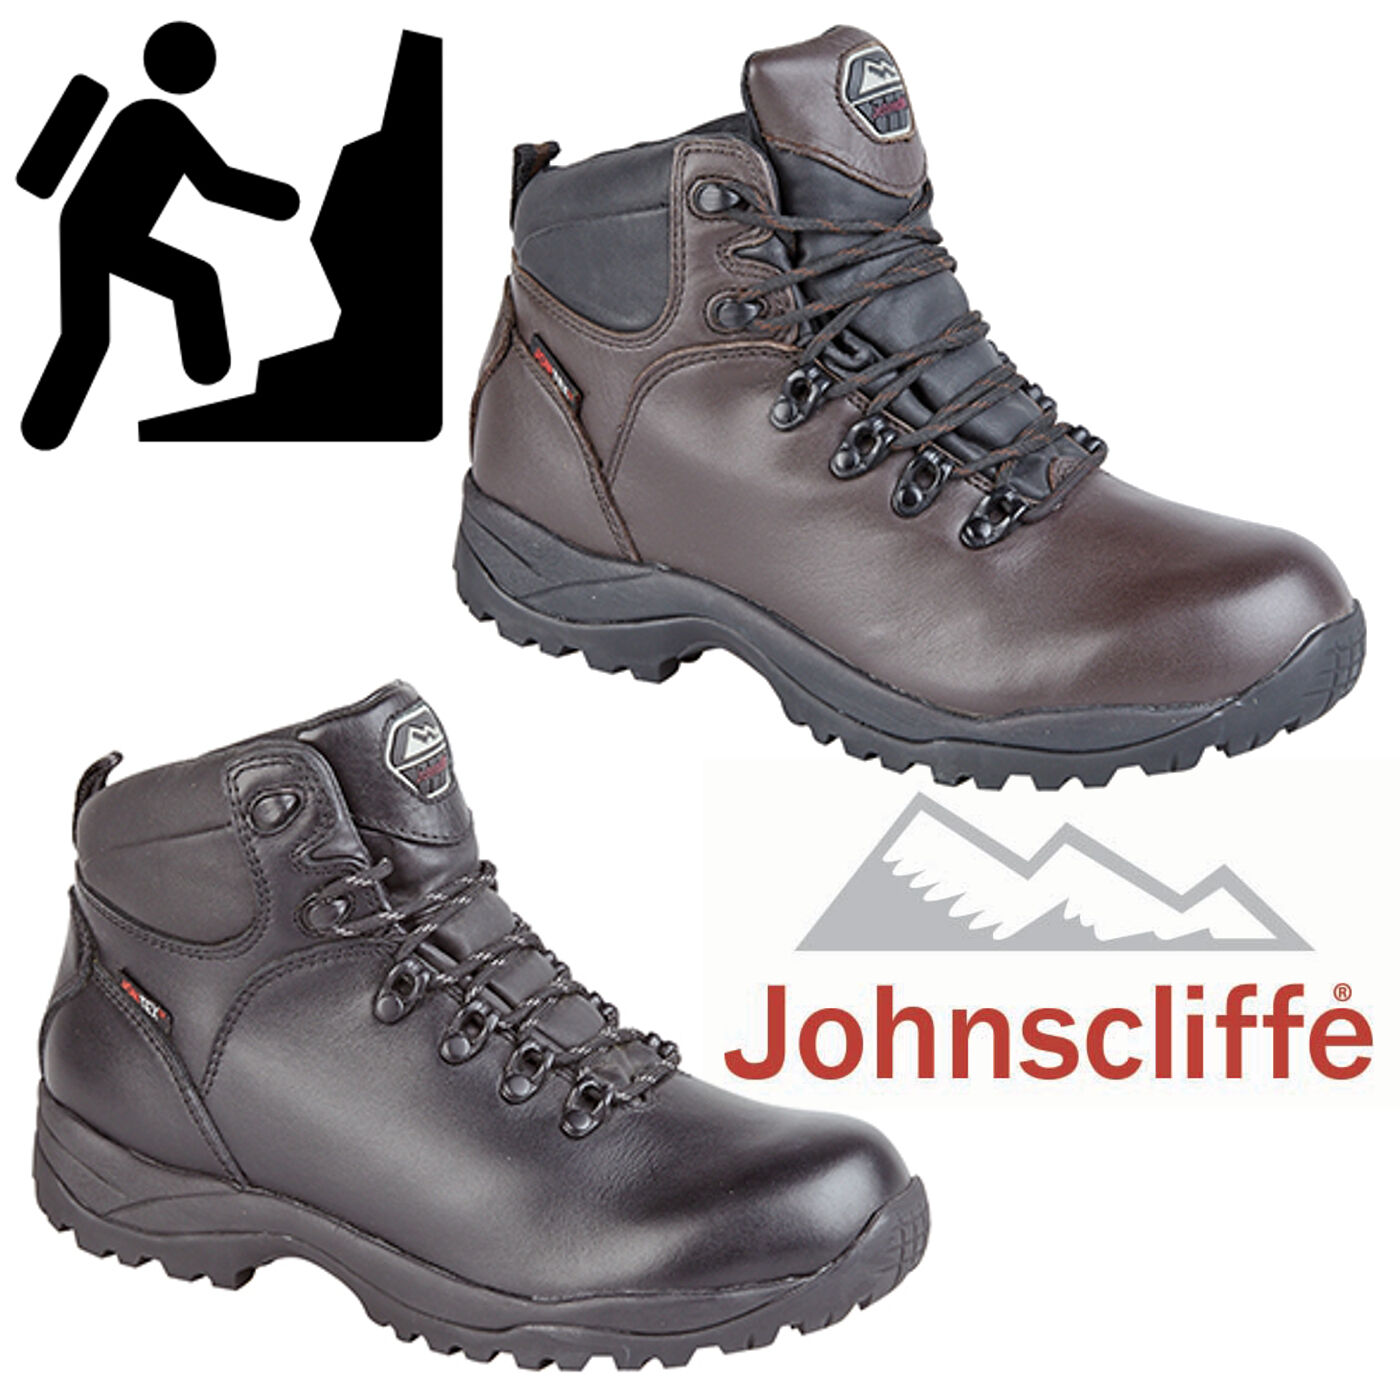 Johnscliffe Mens Typhoon Leather Hiking Boots Waterproof Boys Hillwalking Trail